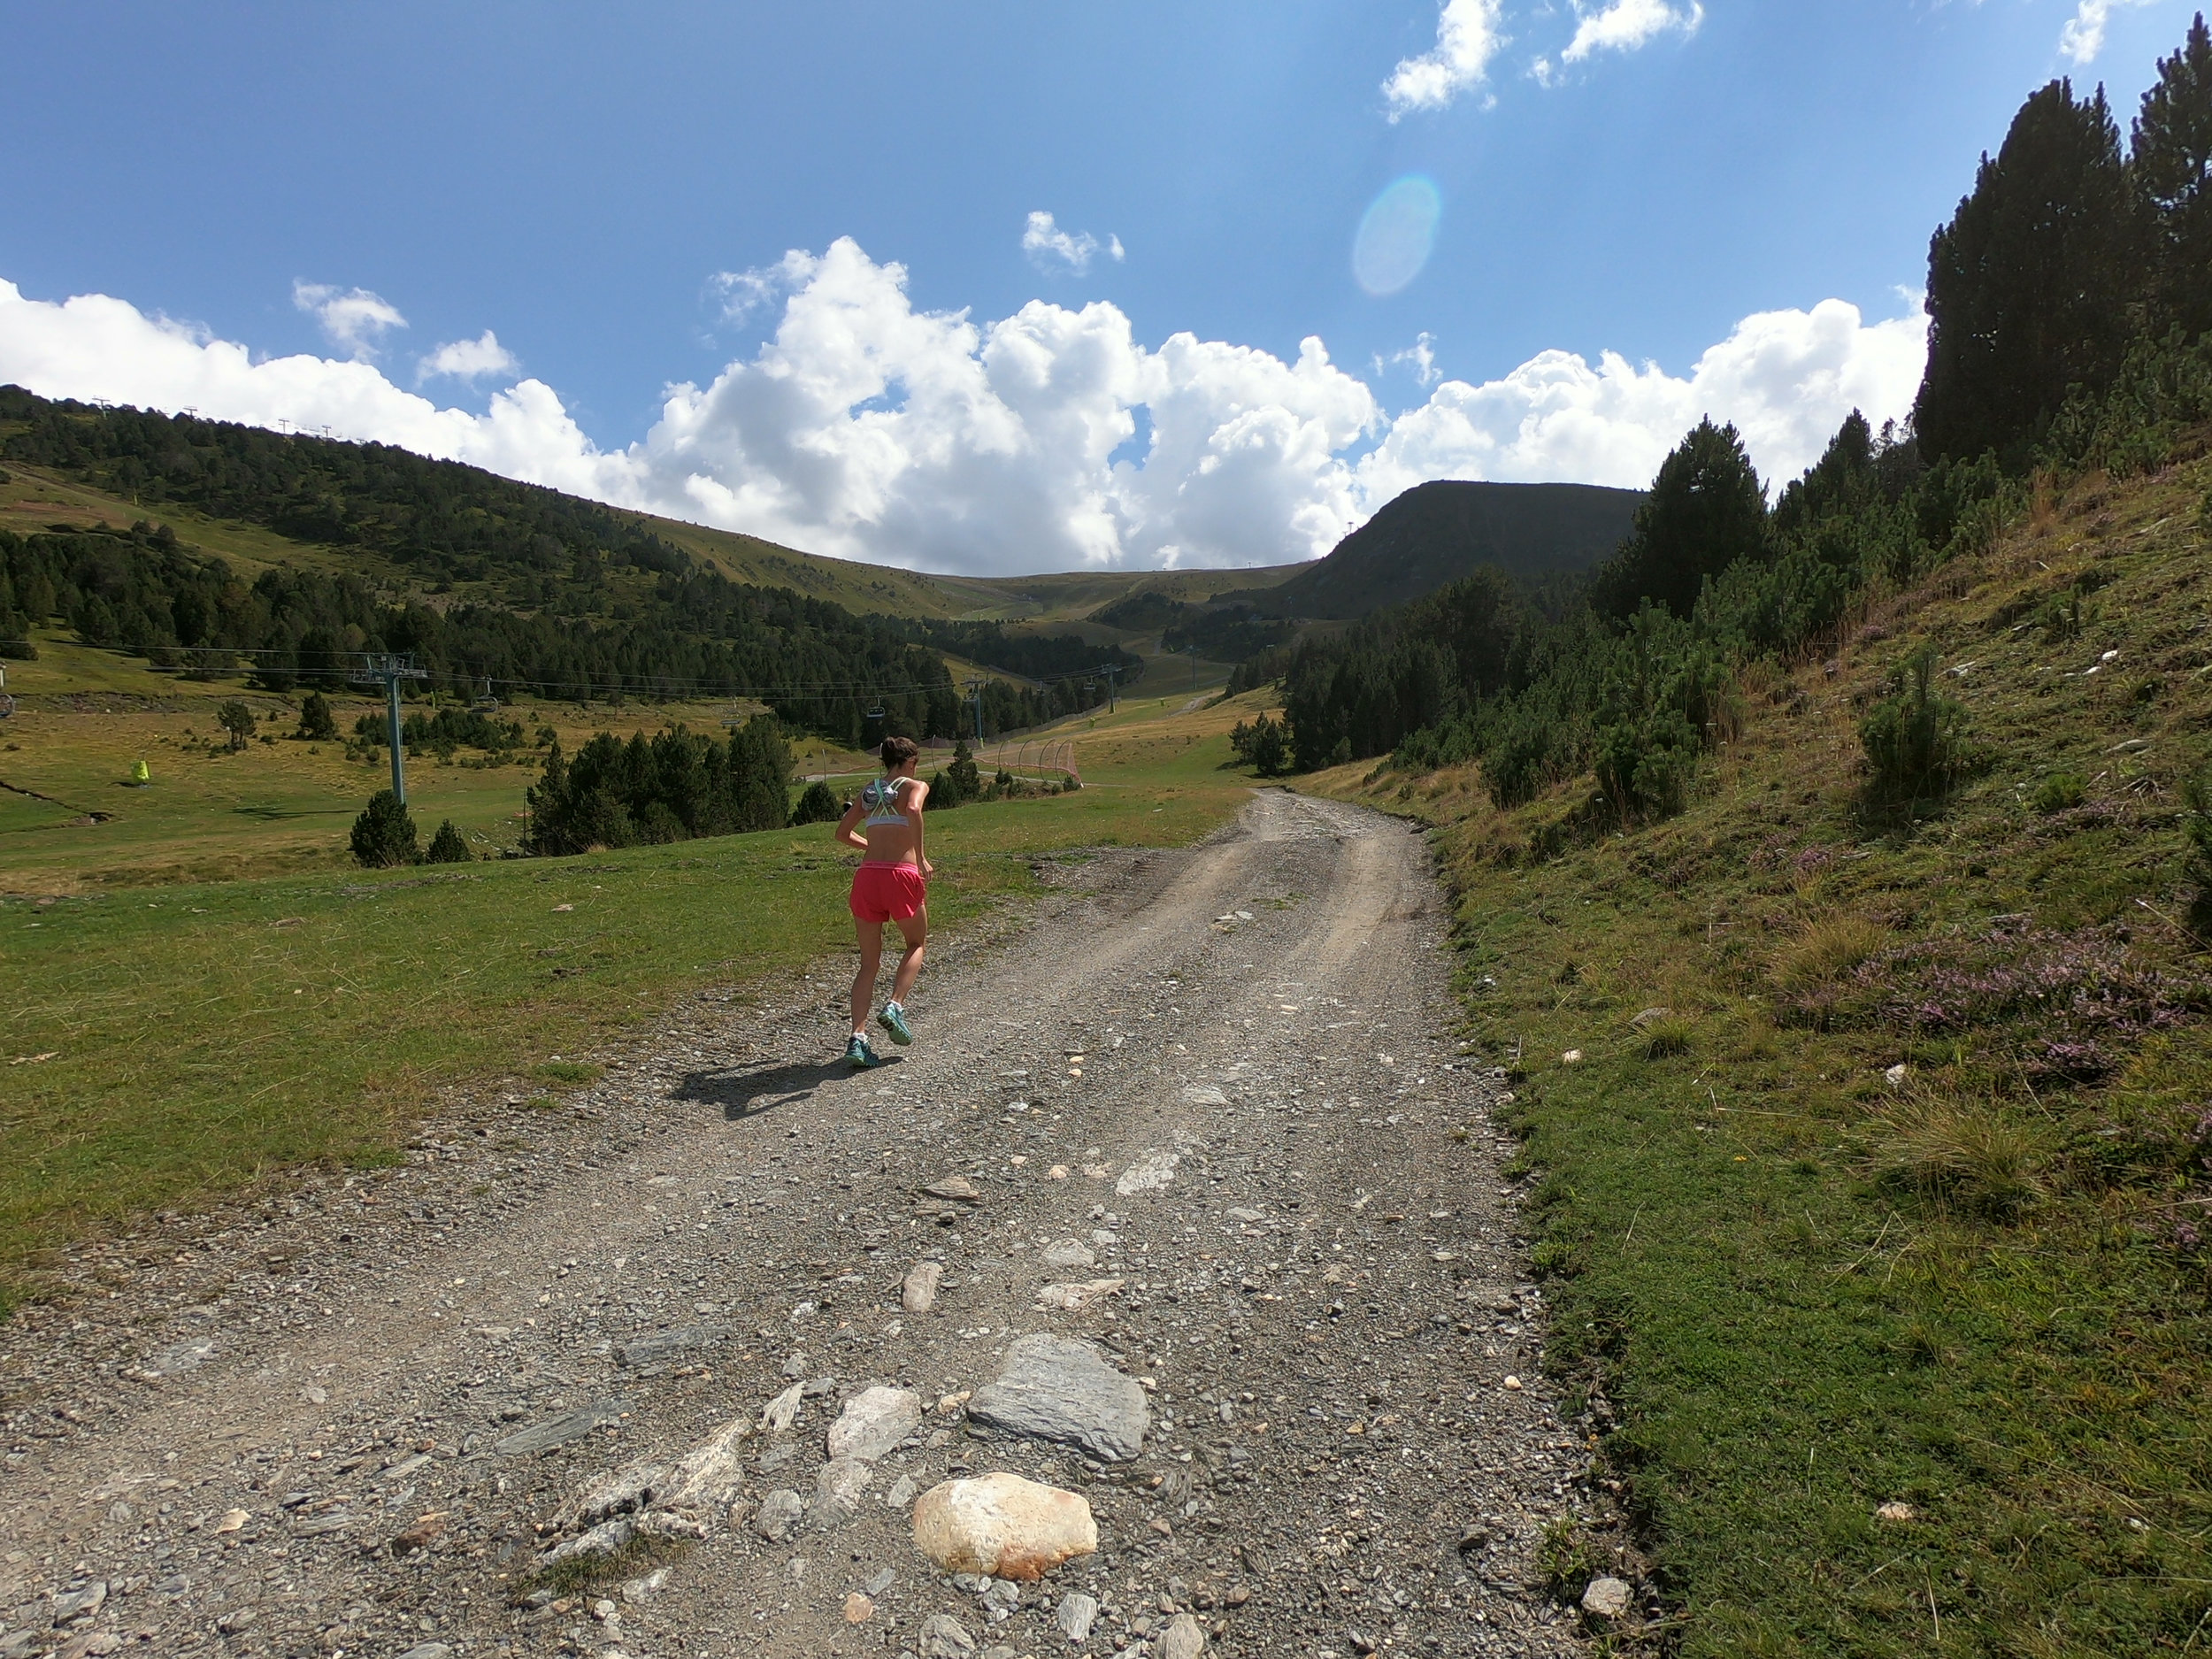 The gravel road. This is at a different ski resort to the ski resort we ran past at about halfway into the race.